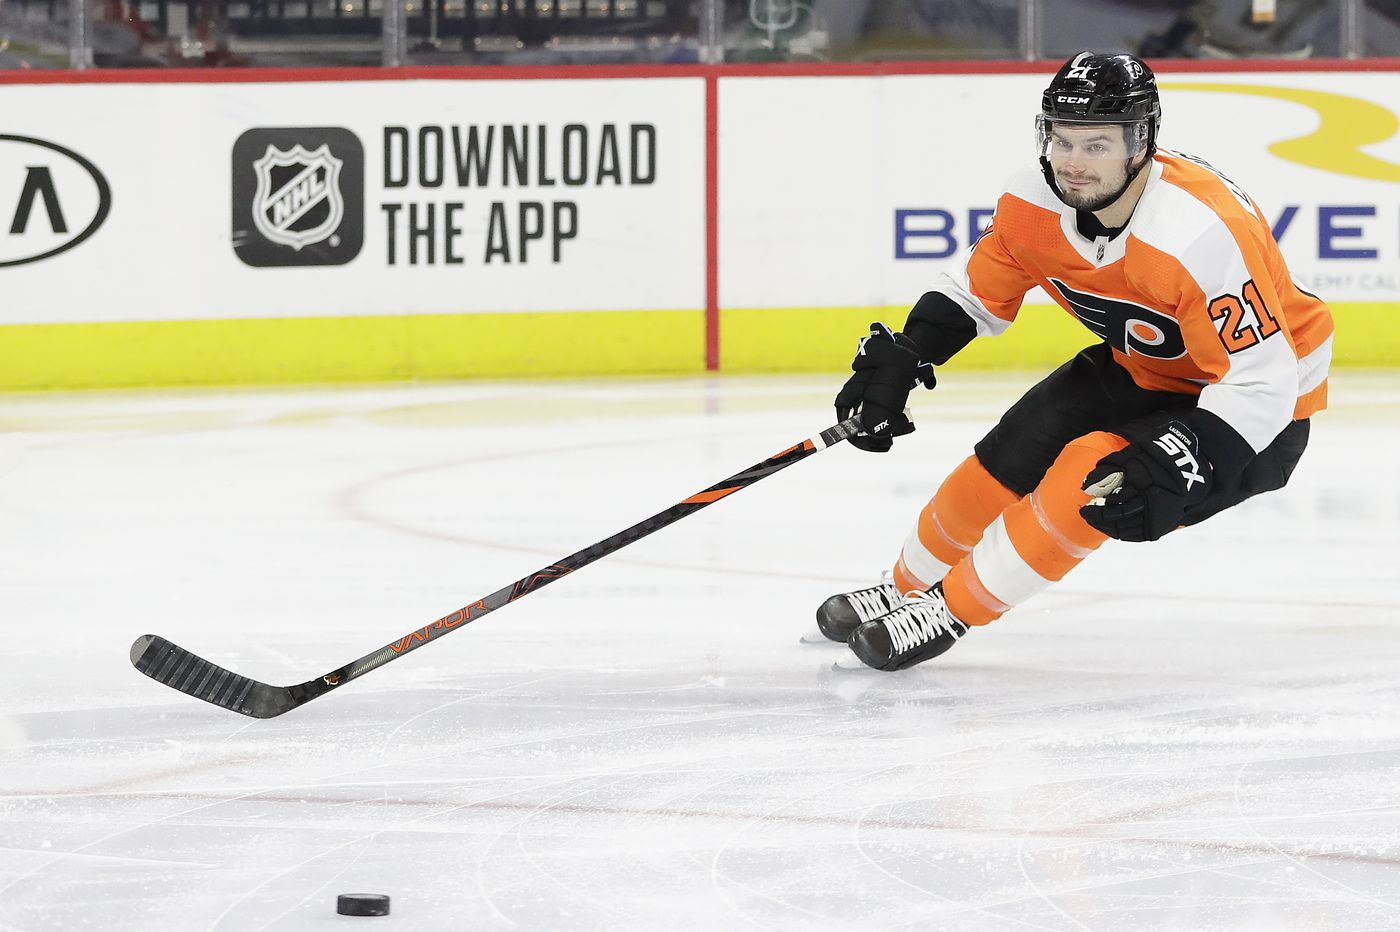 Scott Laughton, Kevin Hayes spark Flyers past Detroit, 3-0, and into top wild-card spot in East